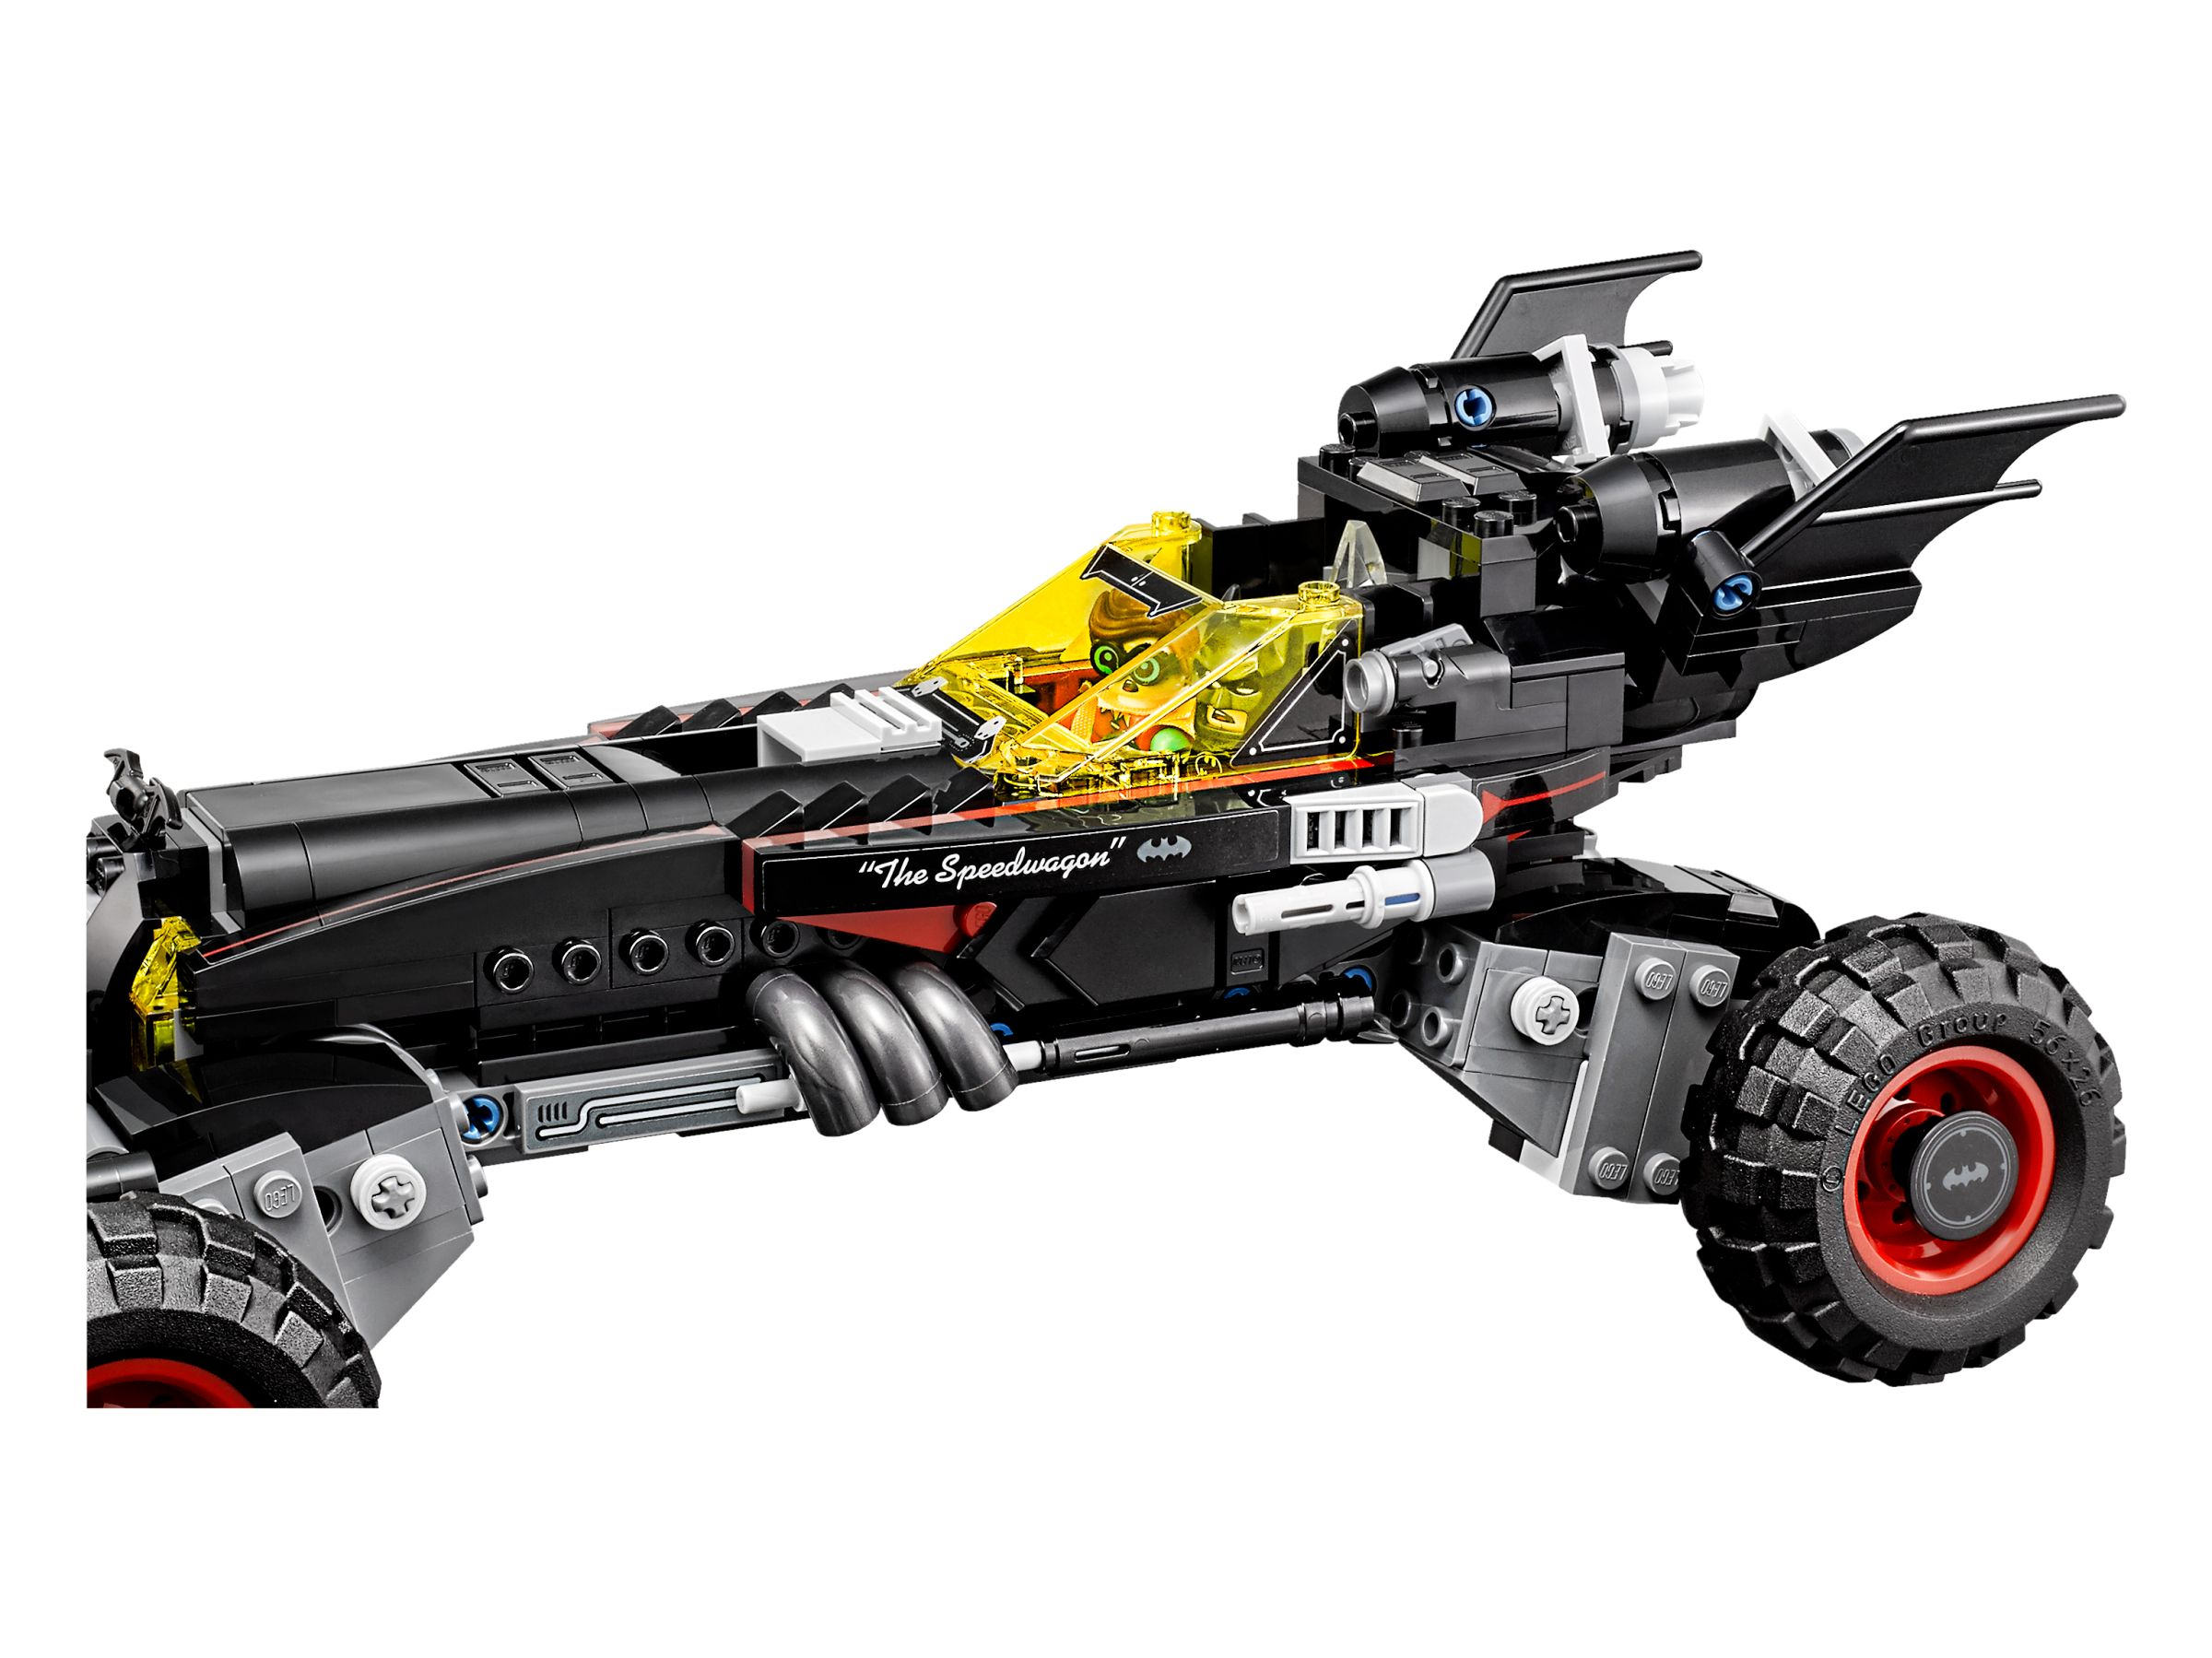 LEGO The LEGO Batman Movie 70905 Das Batmobil LEGO_70905_alt5.jpg